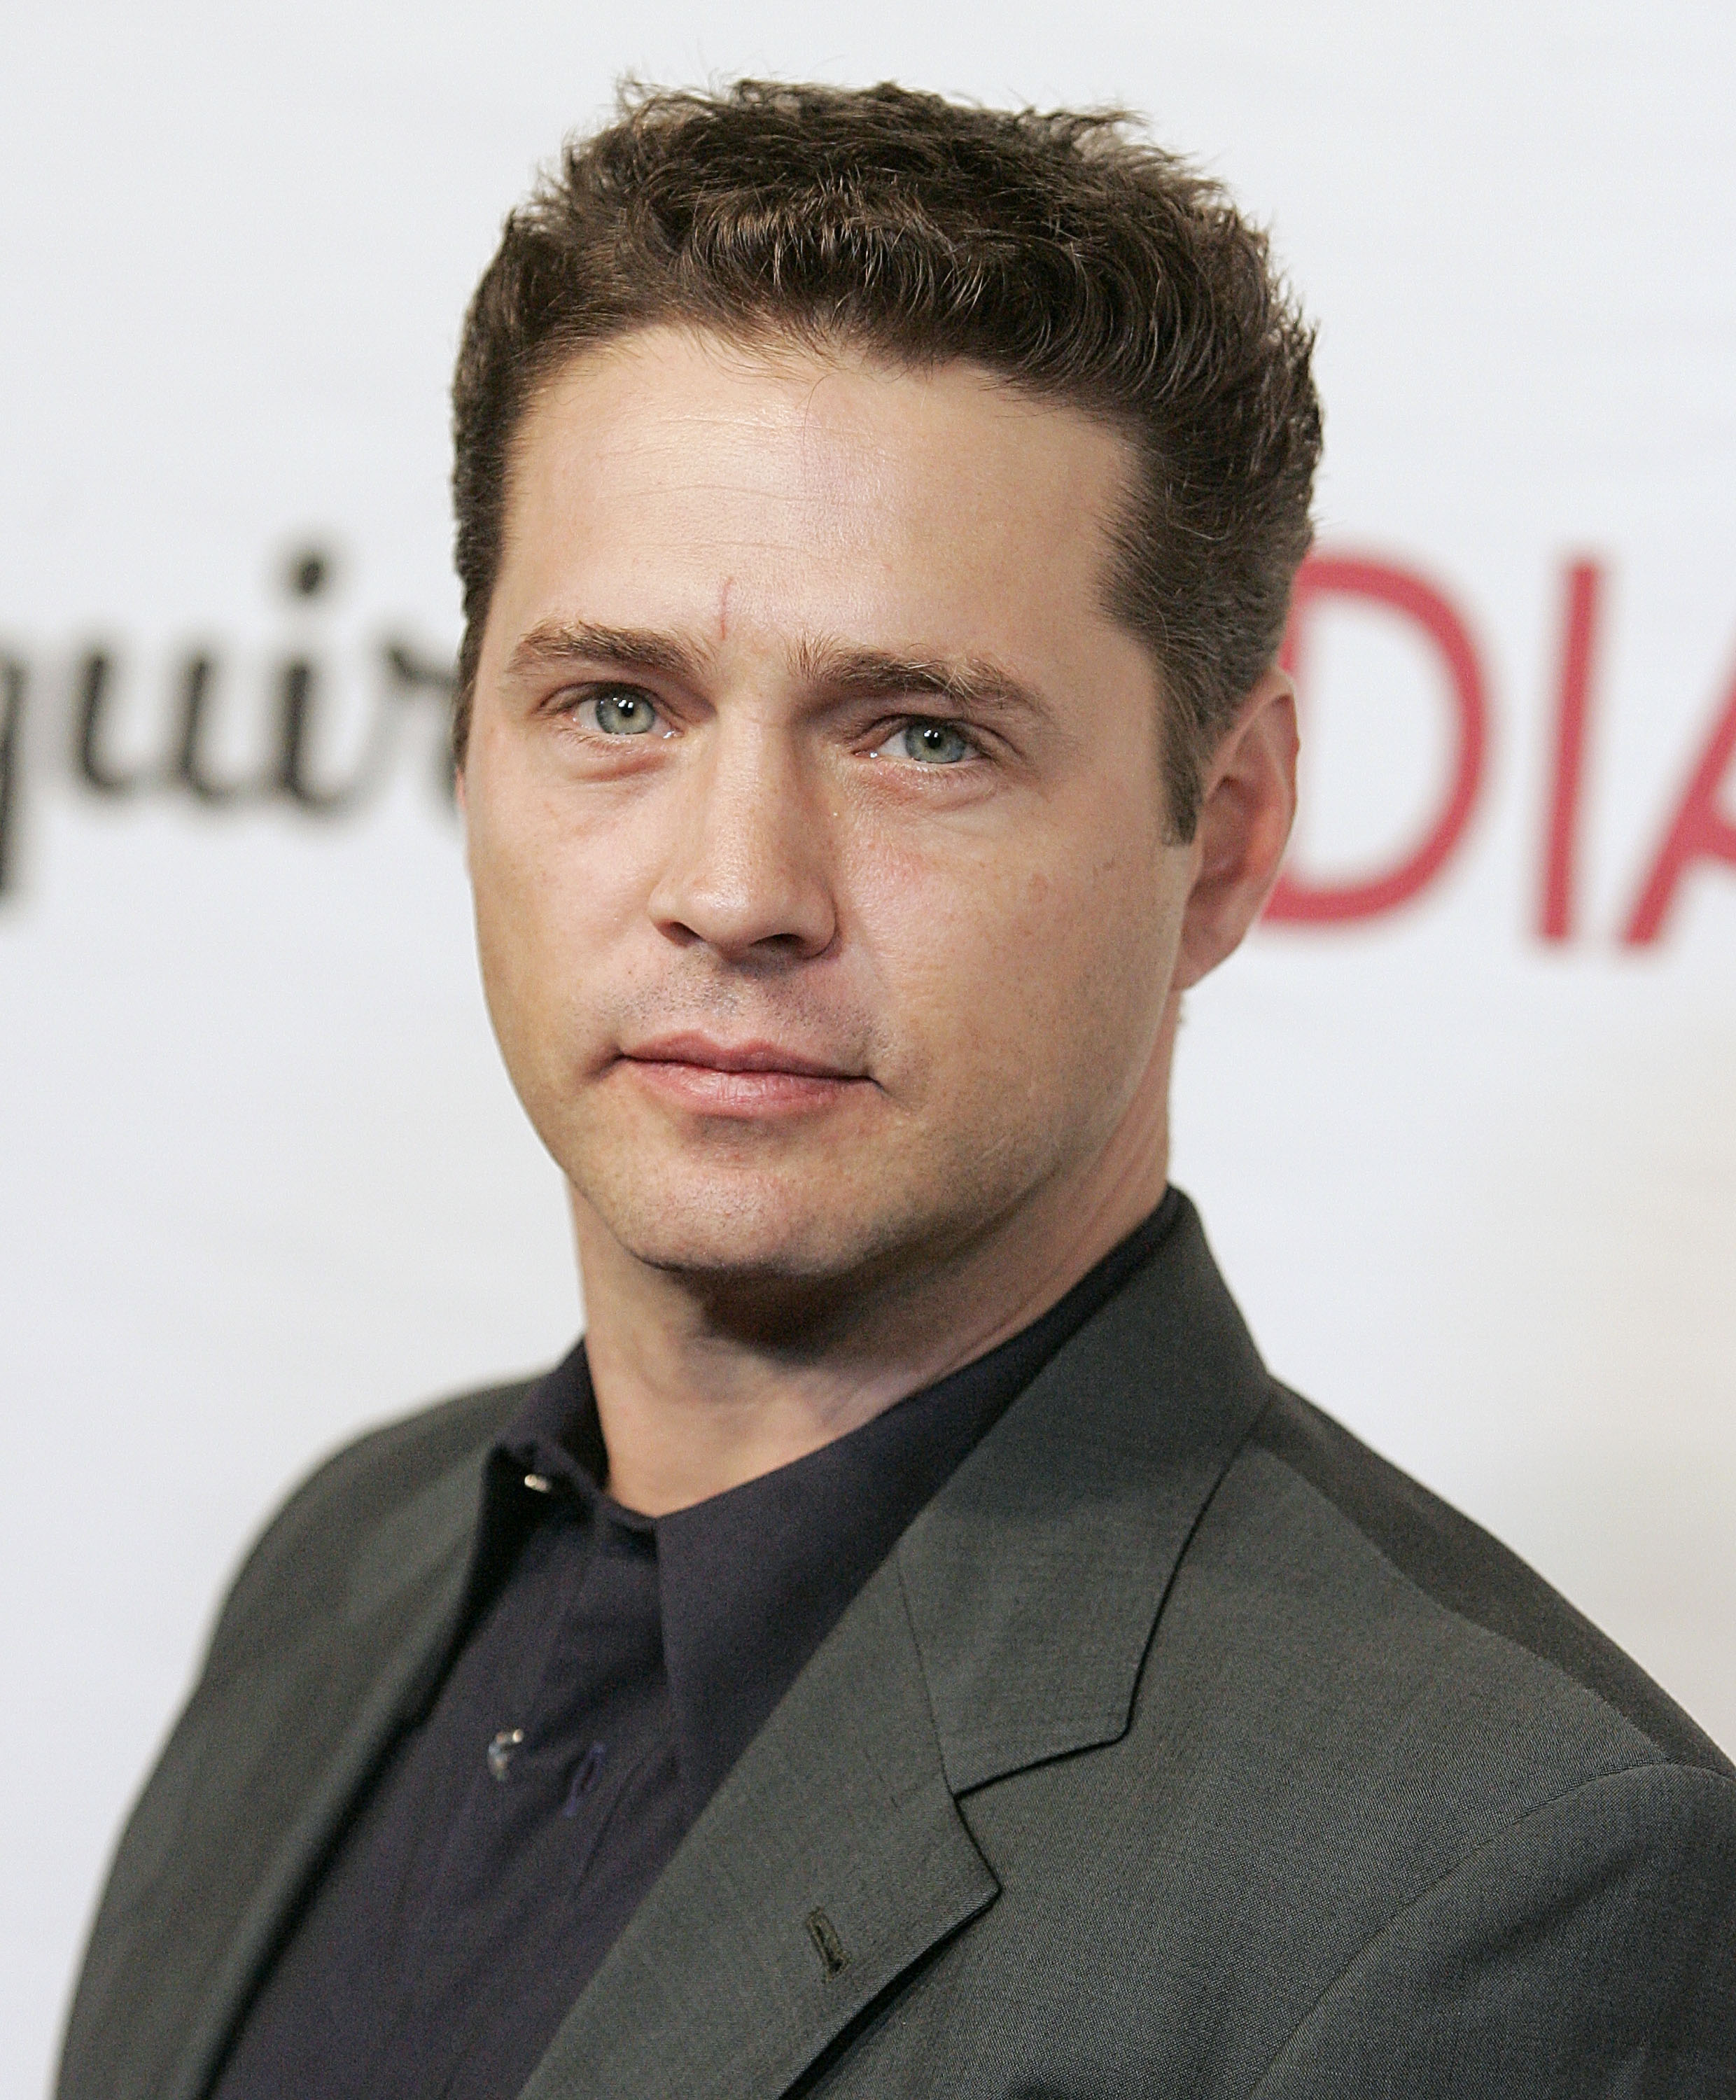 Jason priestley porn pornos videos